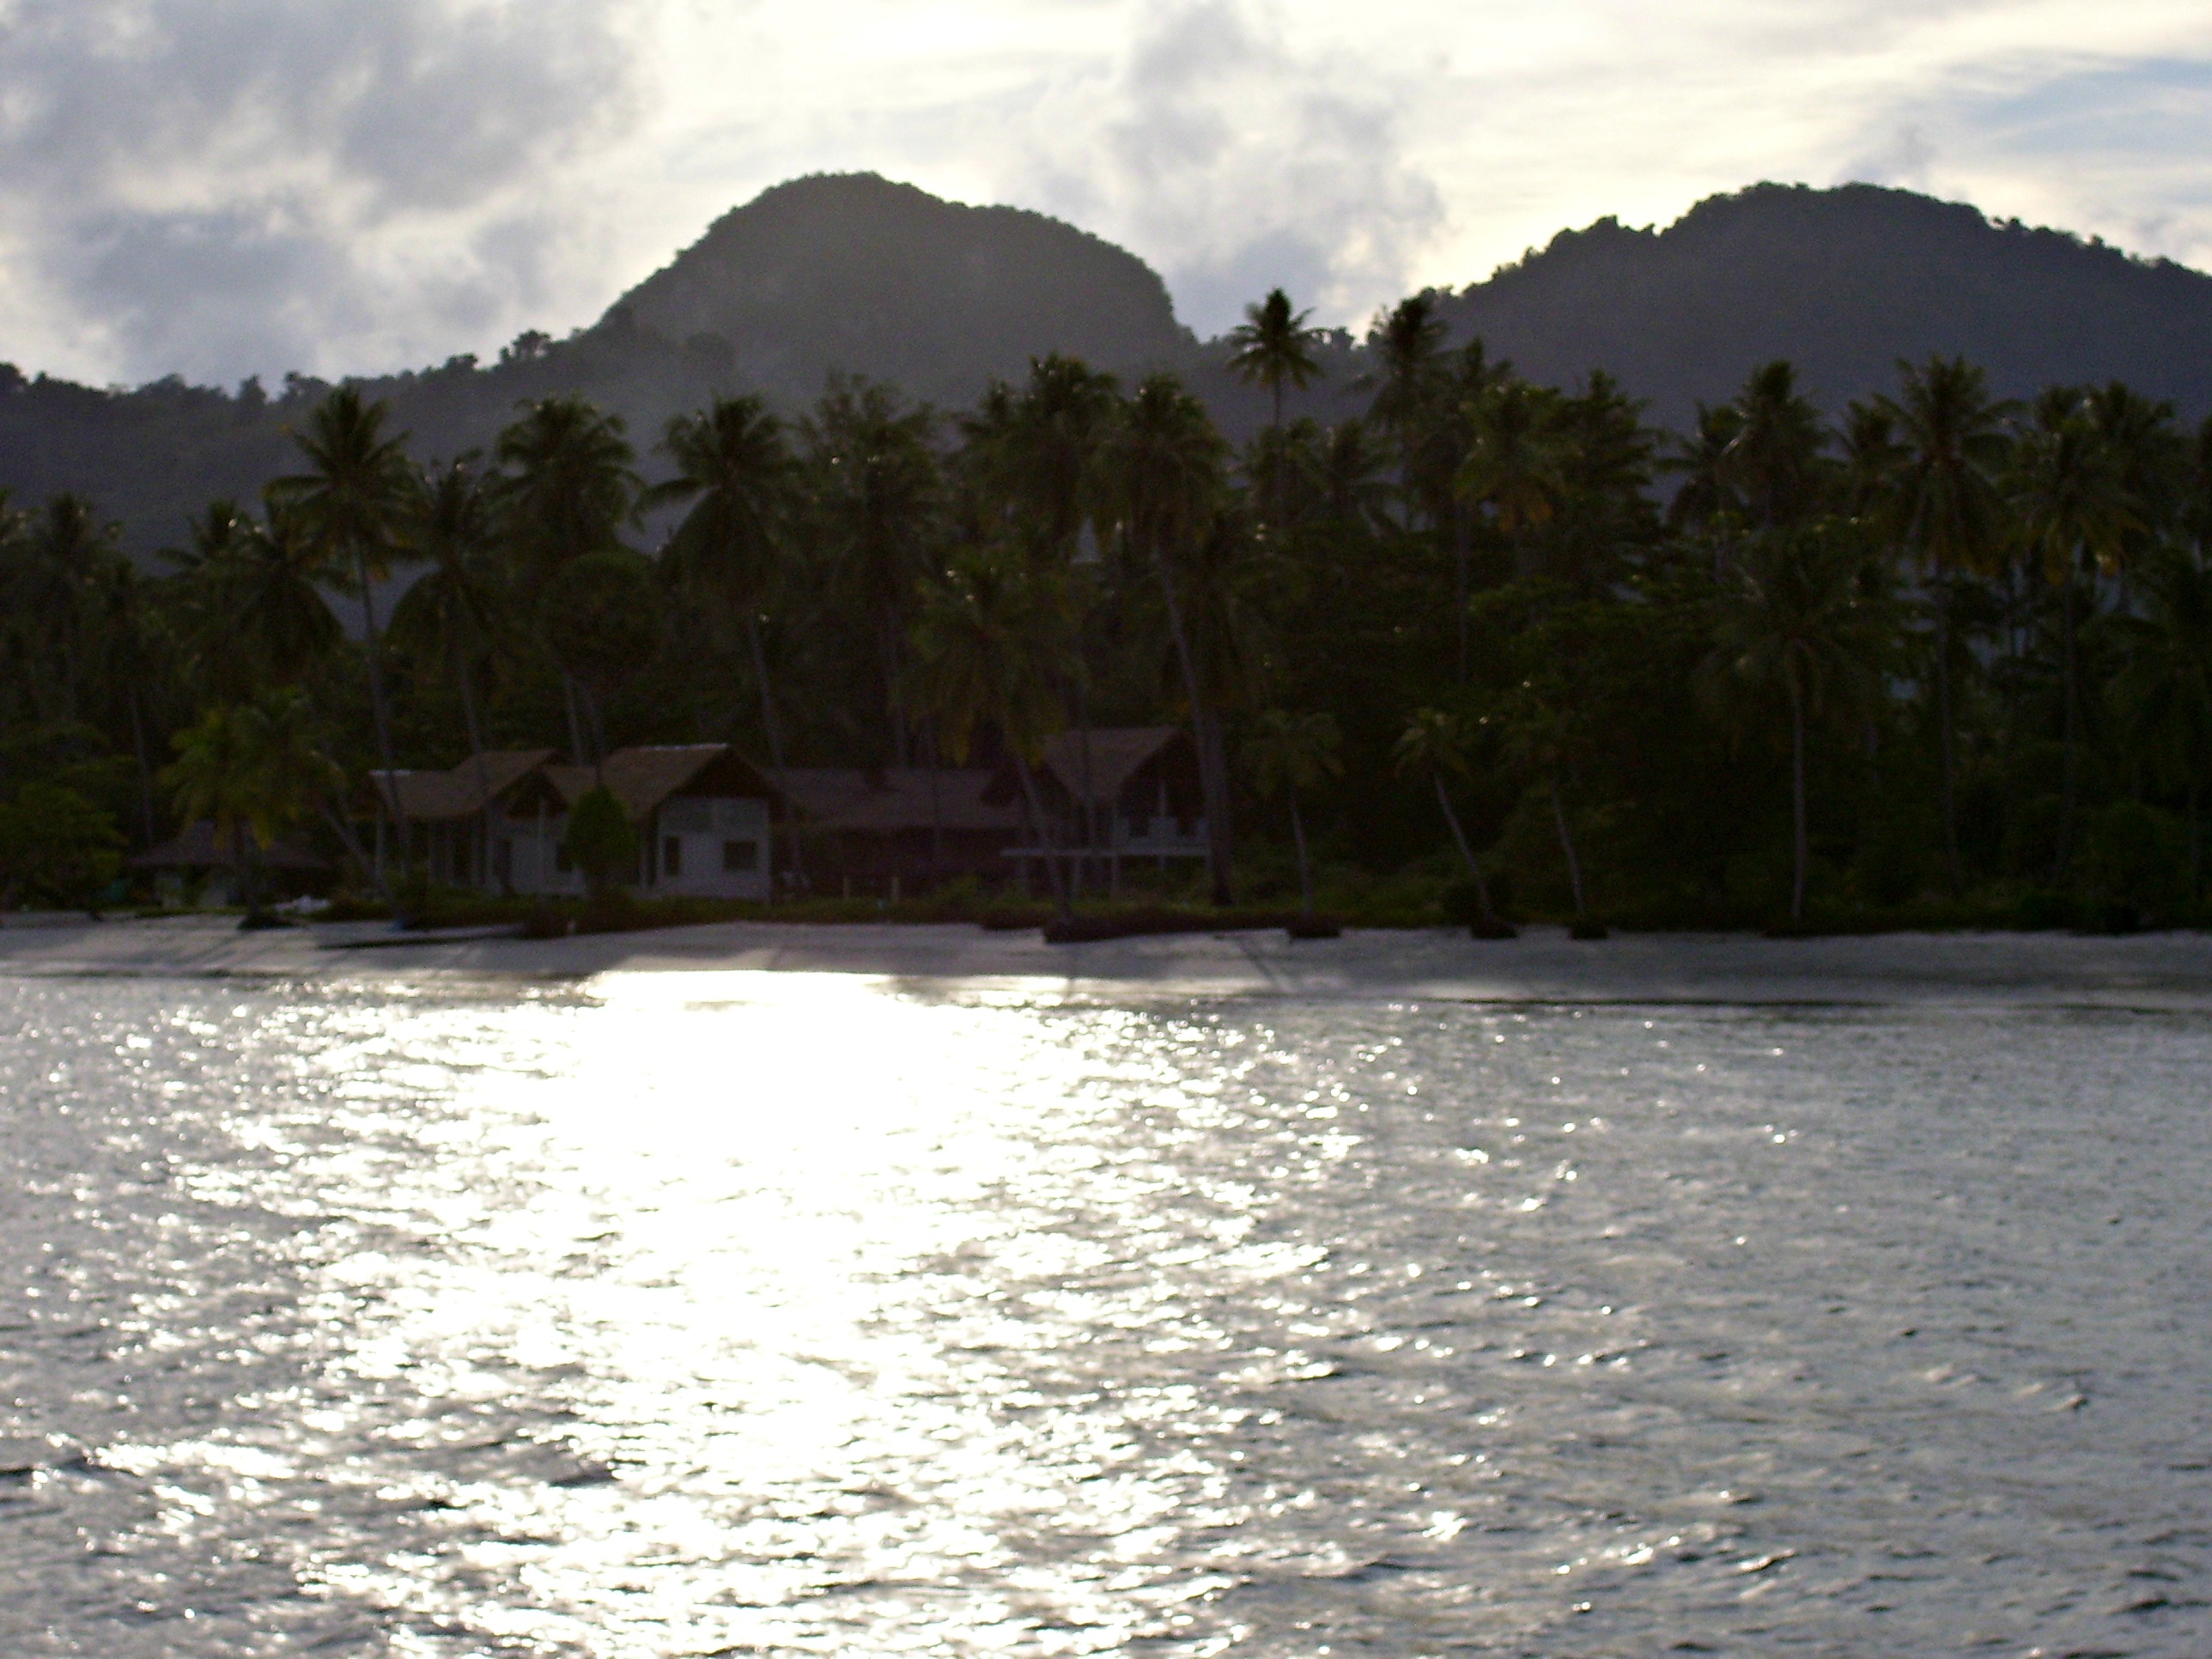 Stranded in paradise on our sailing trip: the view from our anchorage at Ko Muk